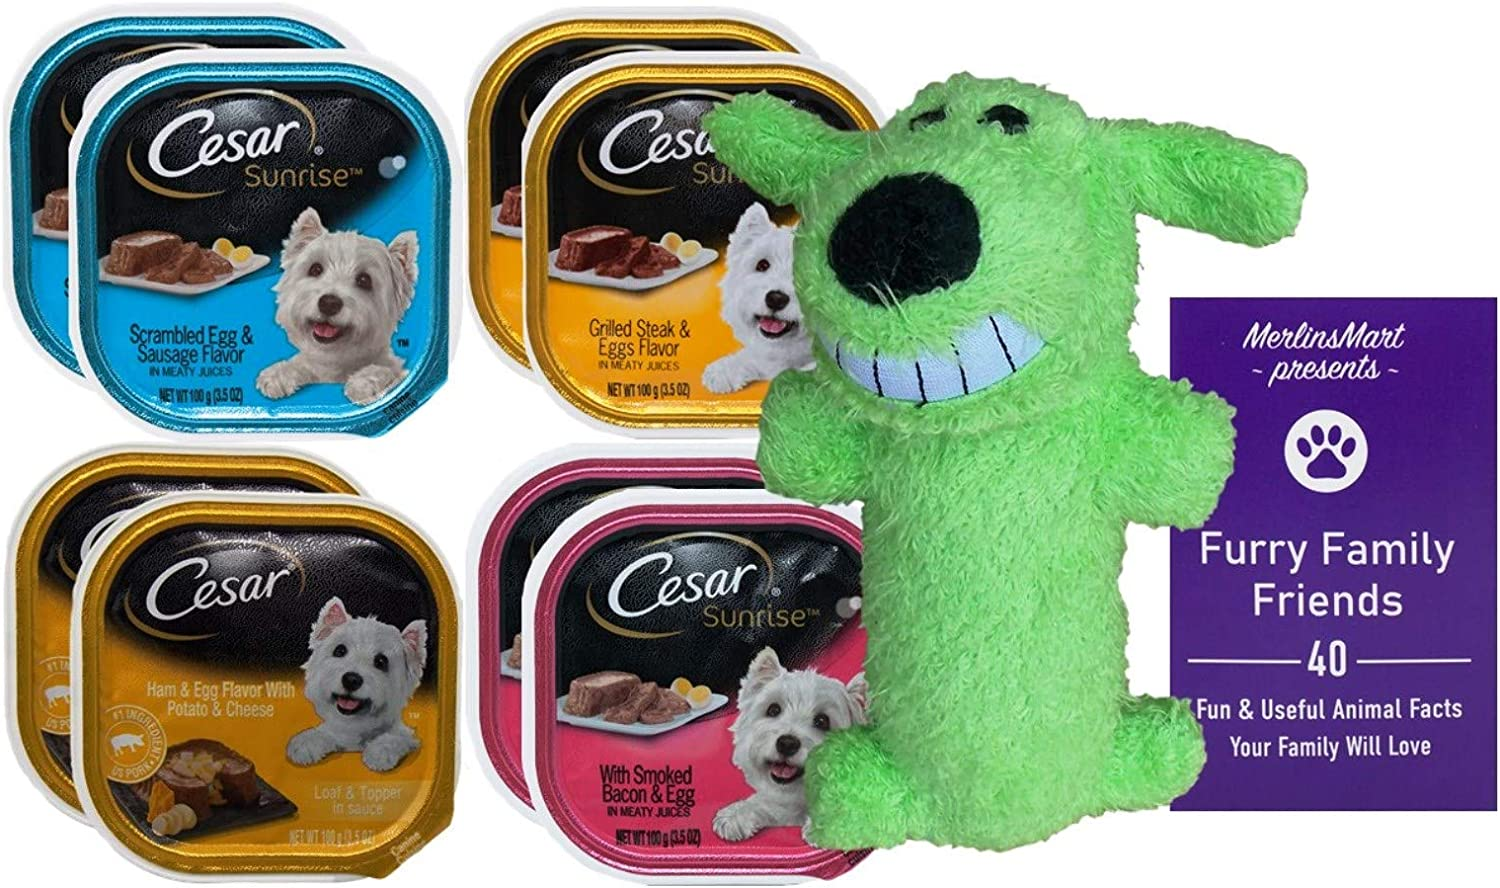 Cesar Breakfast Dog Food 4 Flavor 8 Can Variety (2) each: Scrambled Egg Sausage, Grilled Steak Eggs, Ham Egg Potato Cheese, Smoked Bacon Egg (3.5 Ounces) - Plus Squeak Toy and Fun Facts Booklet Bundle